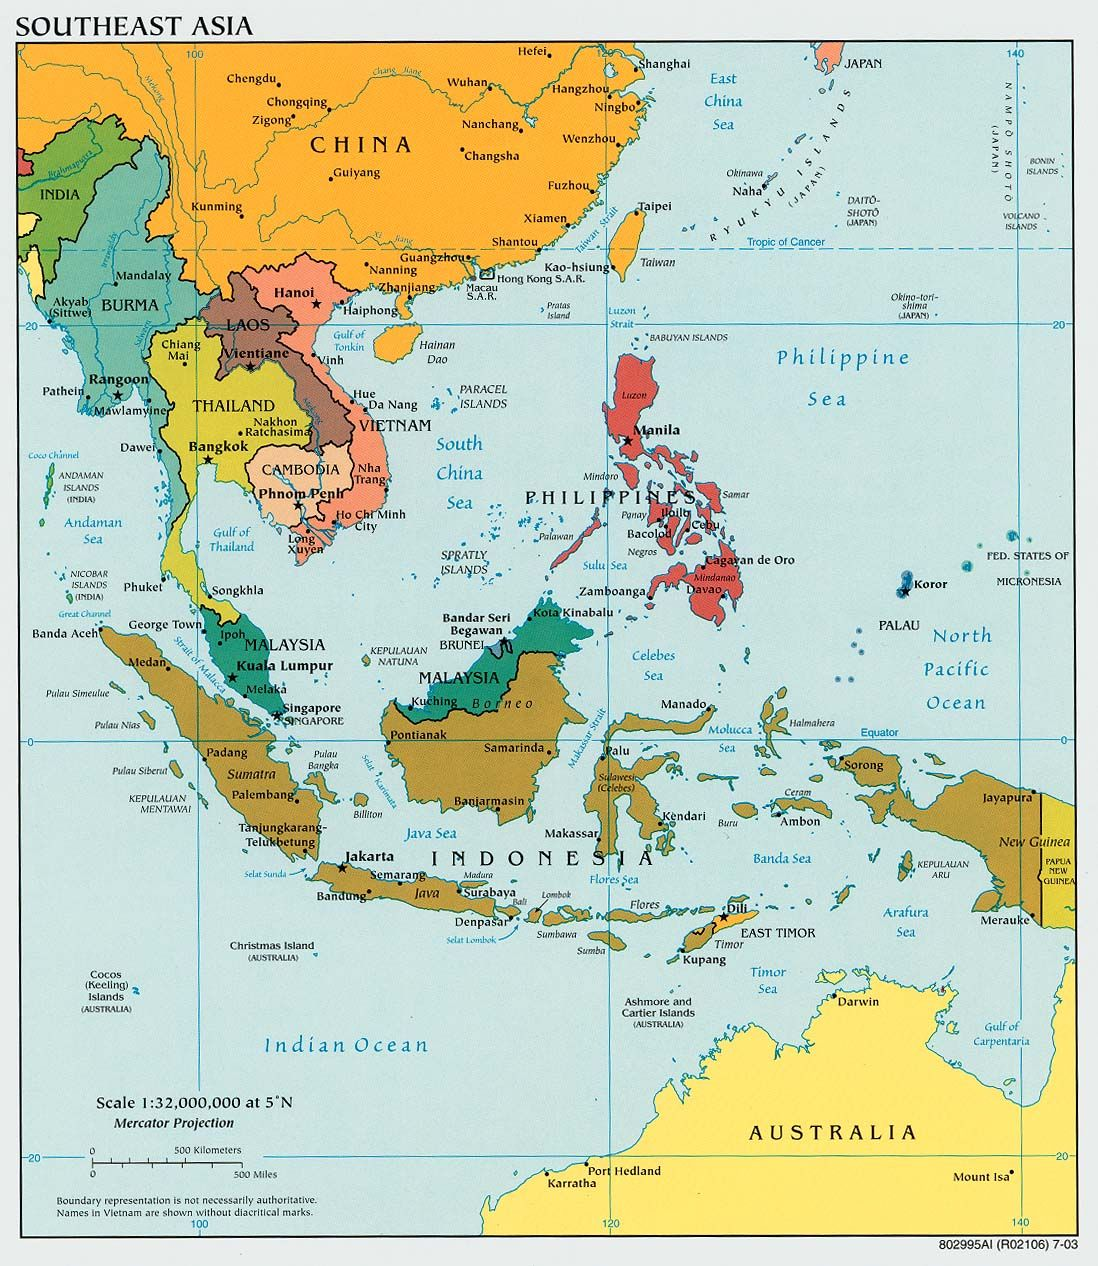 SouthEast Asia | Asia map, East asia map, Southeast asia